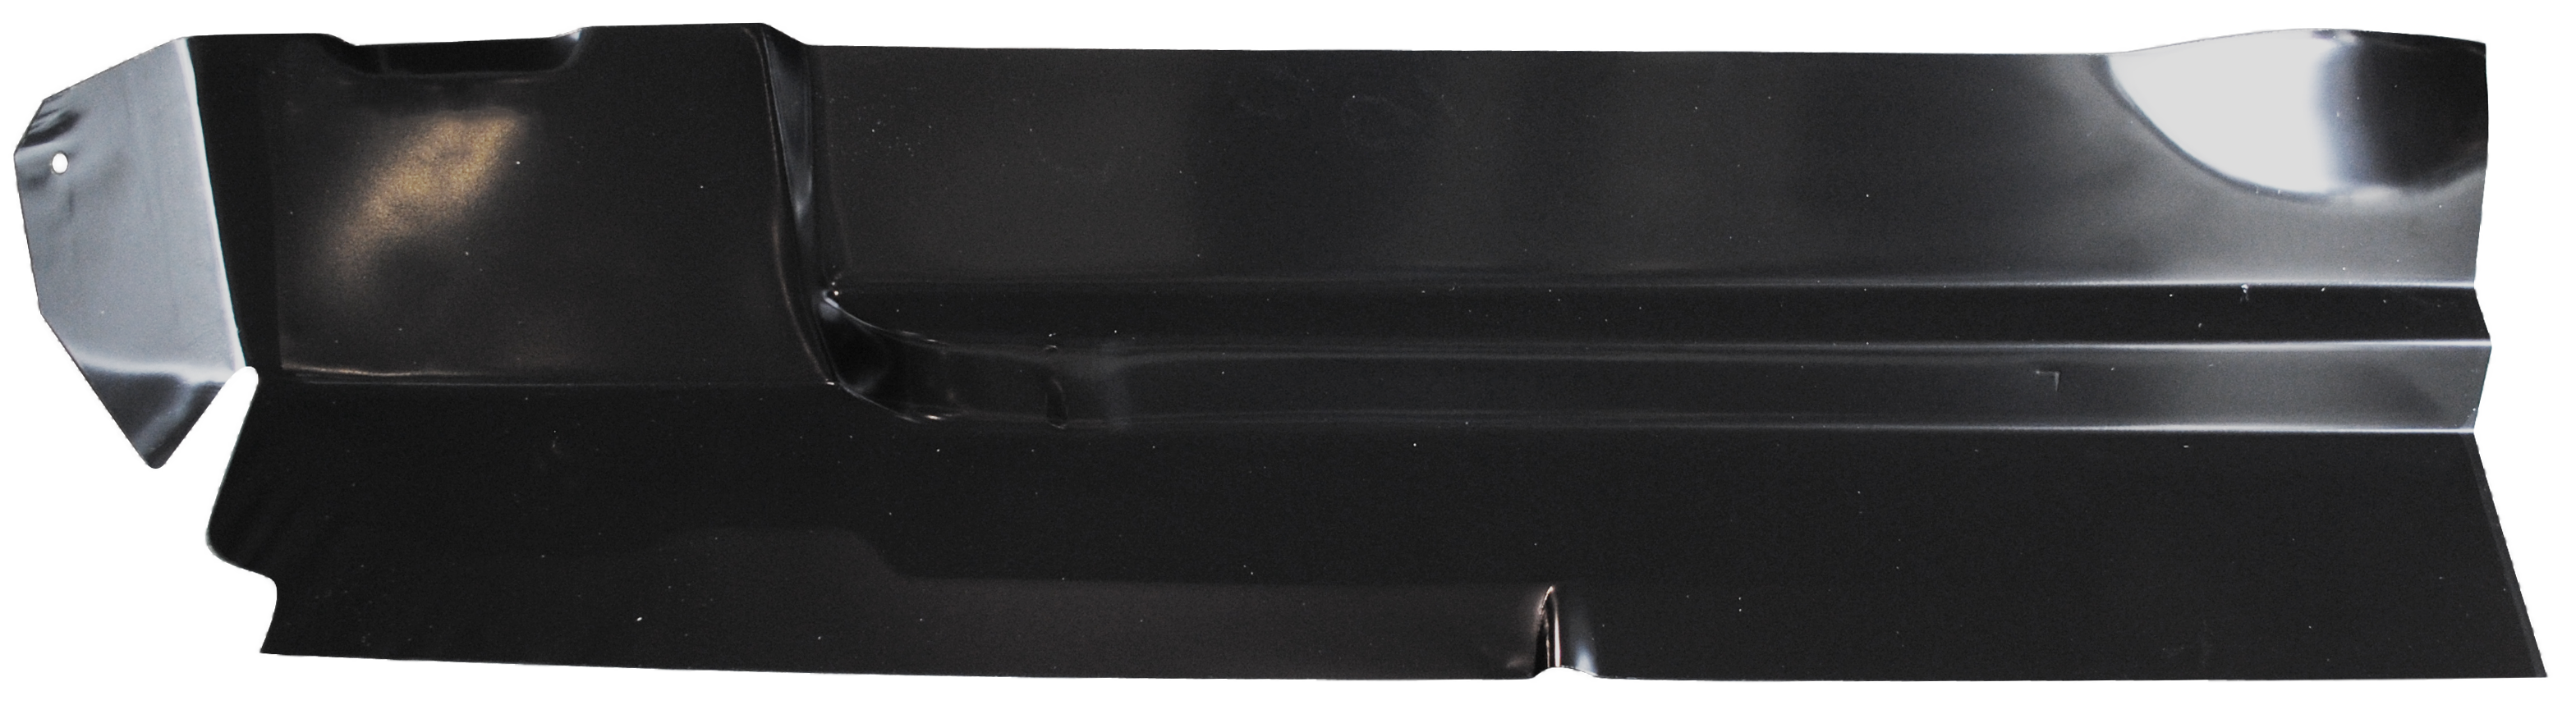 1960-72 C10 rear half outer floor section lt